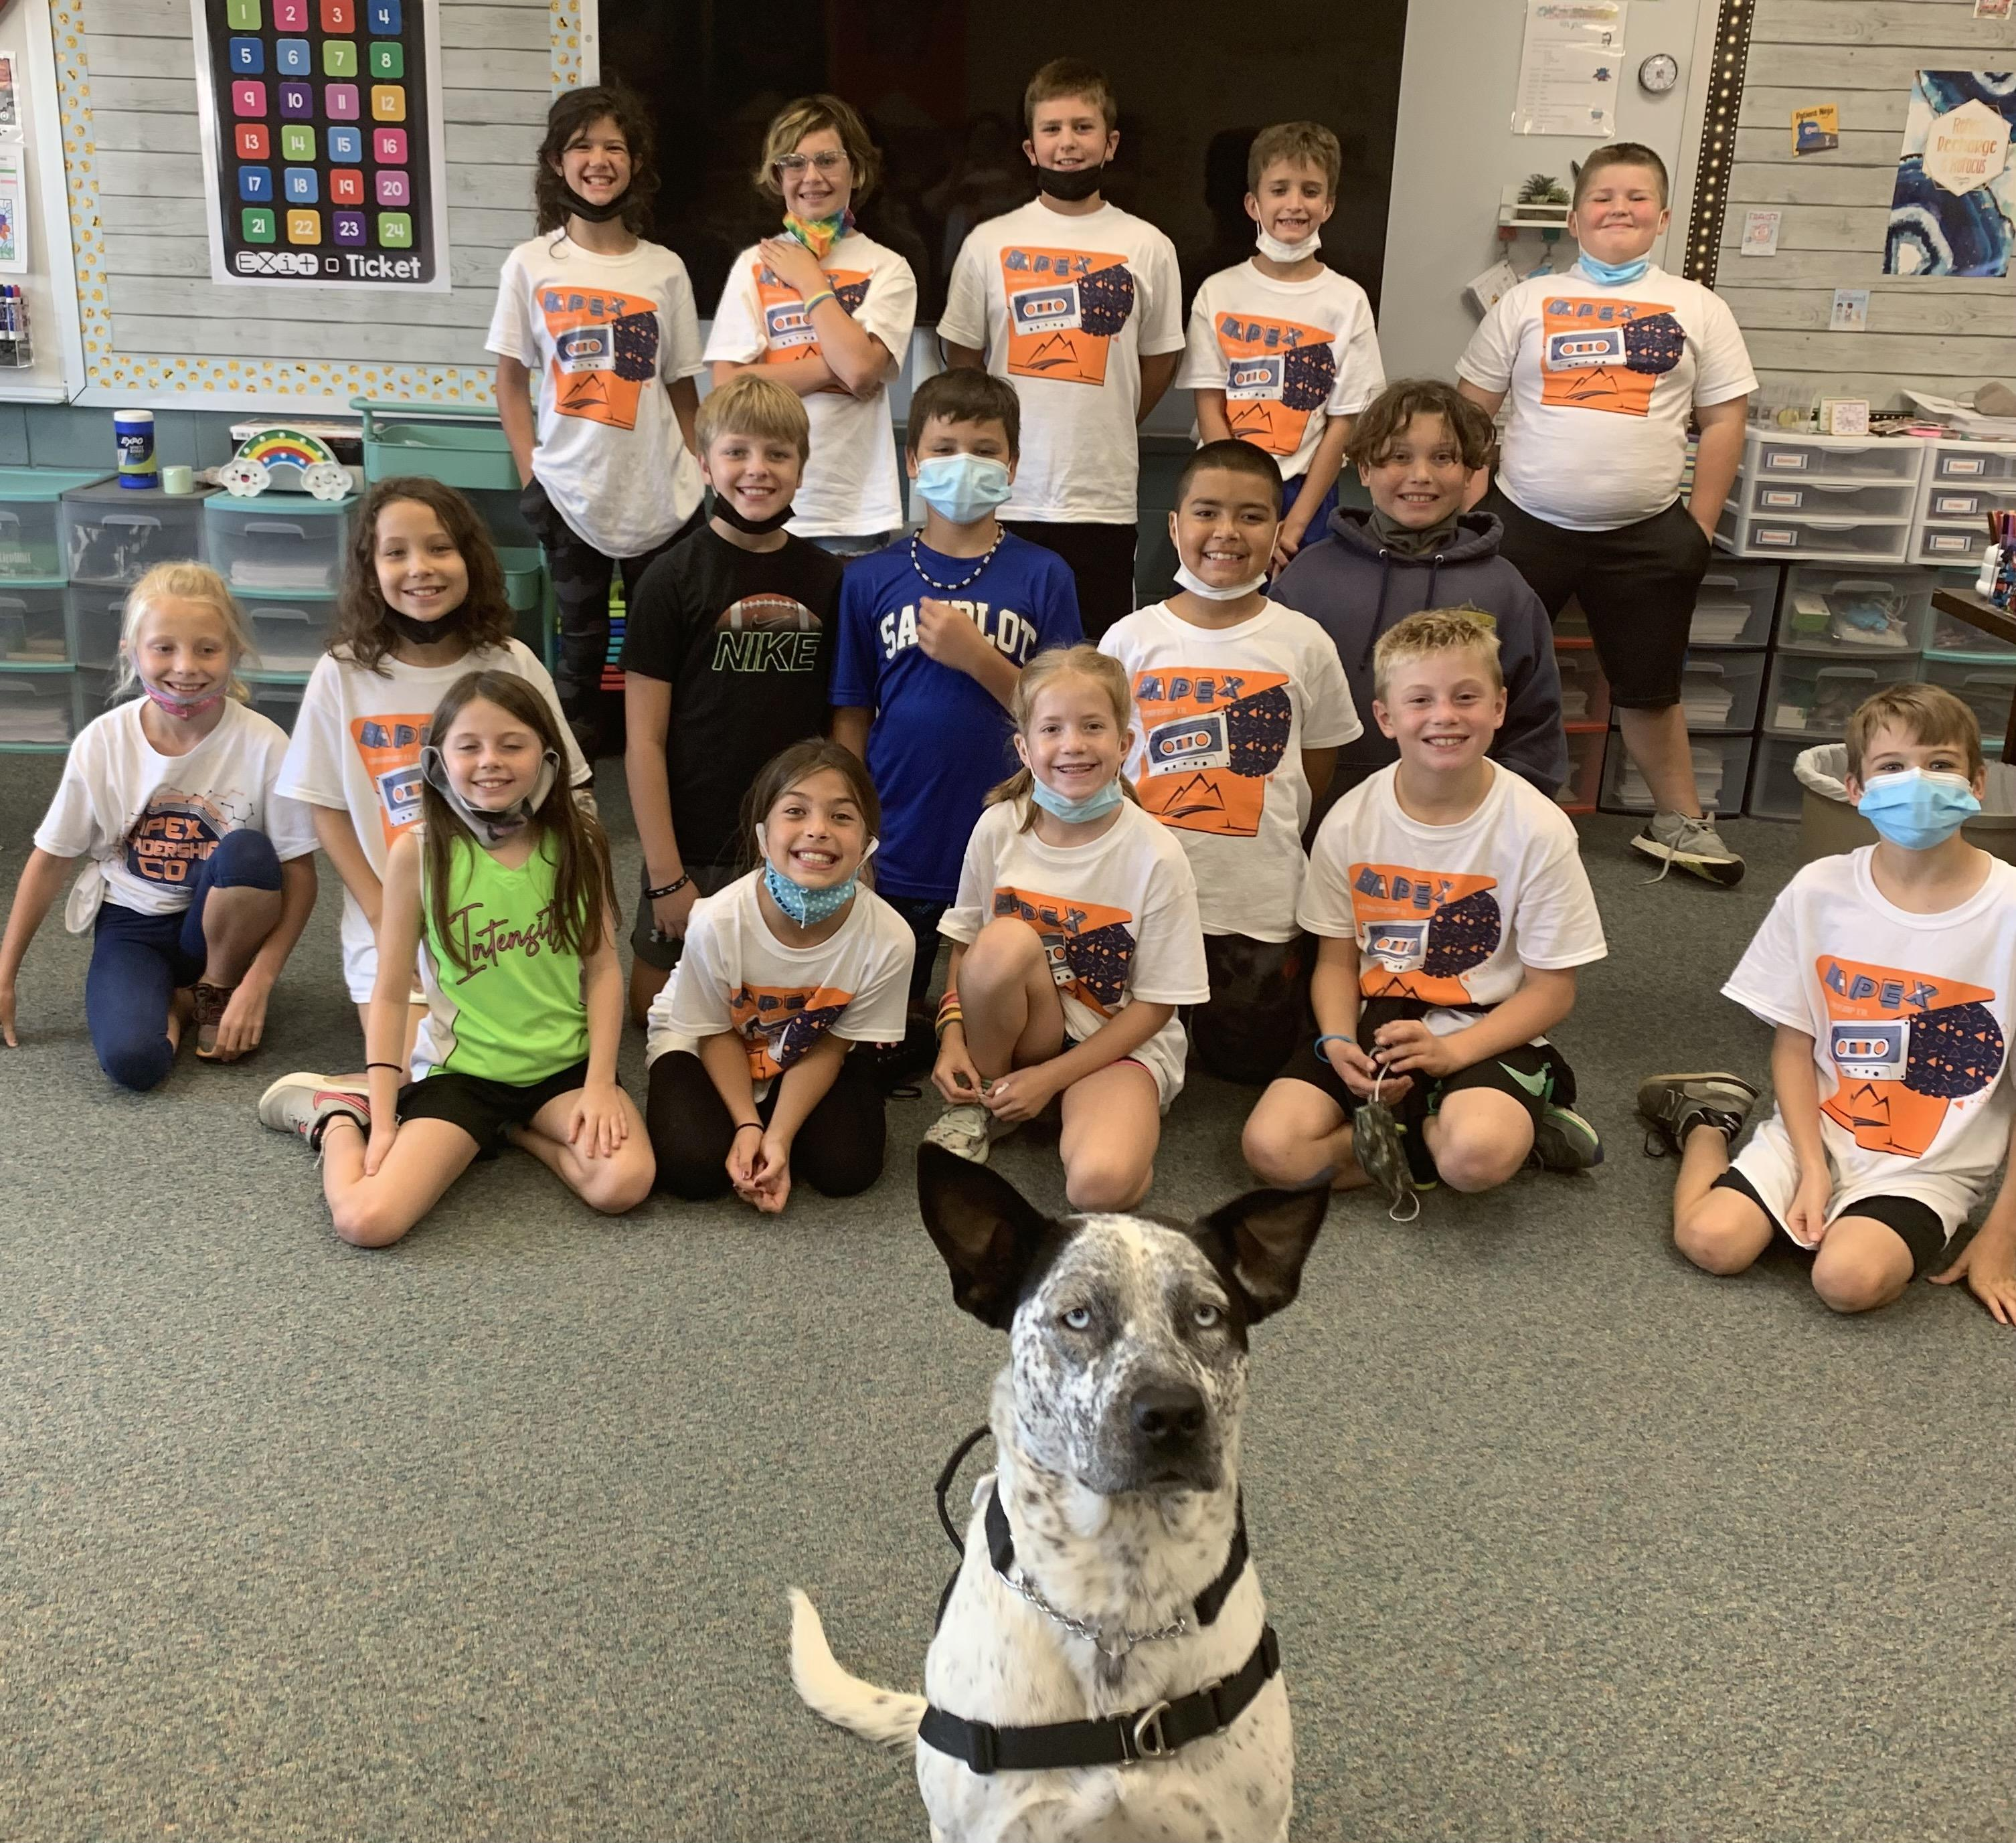 Skye with Ms. Dulaney's class